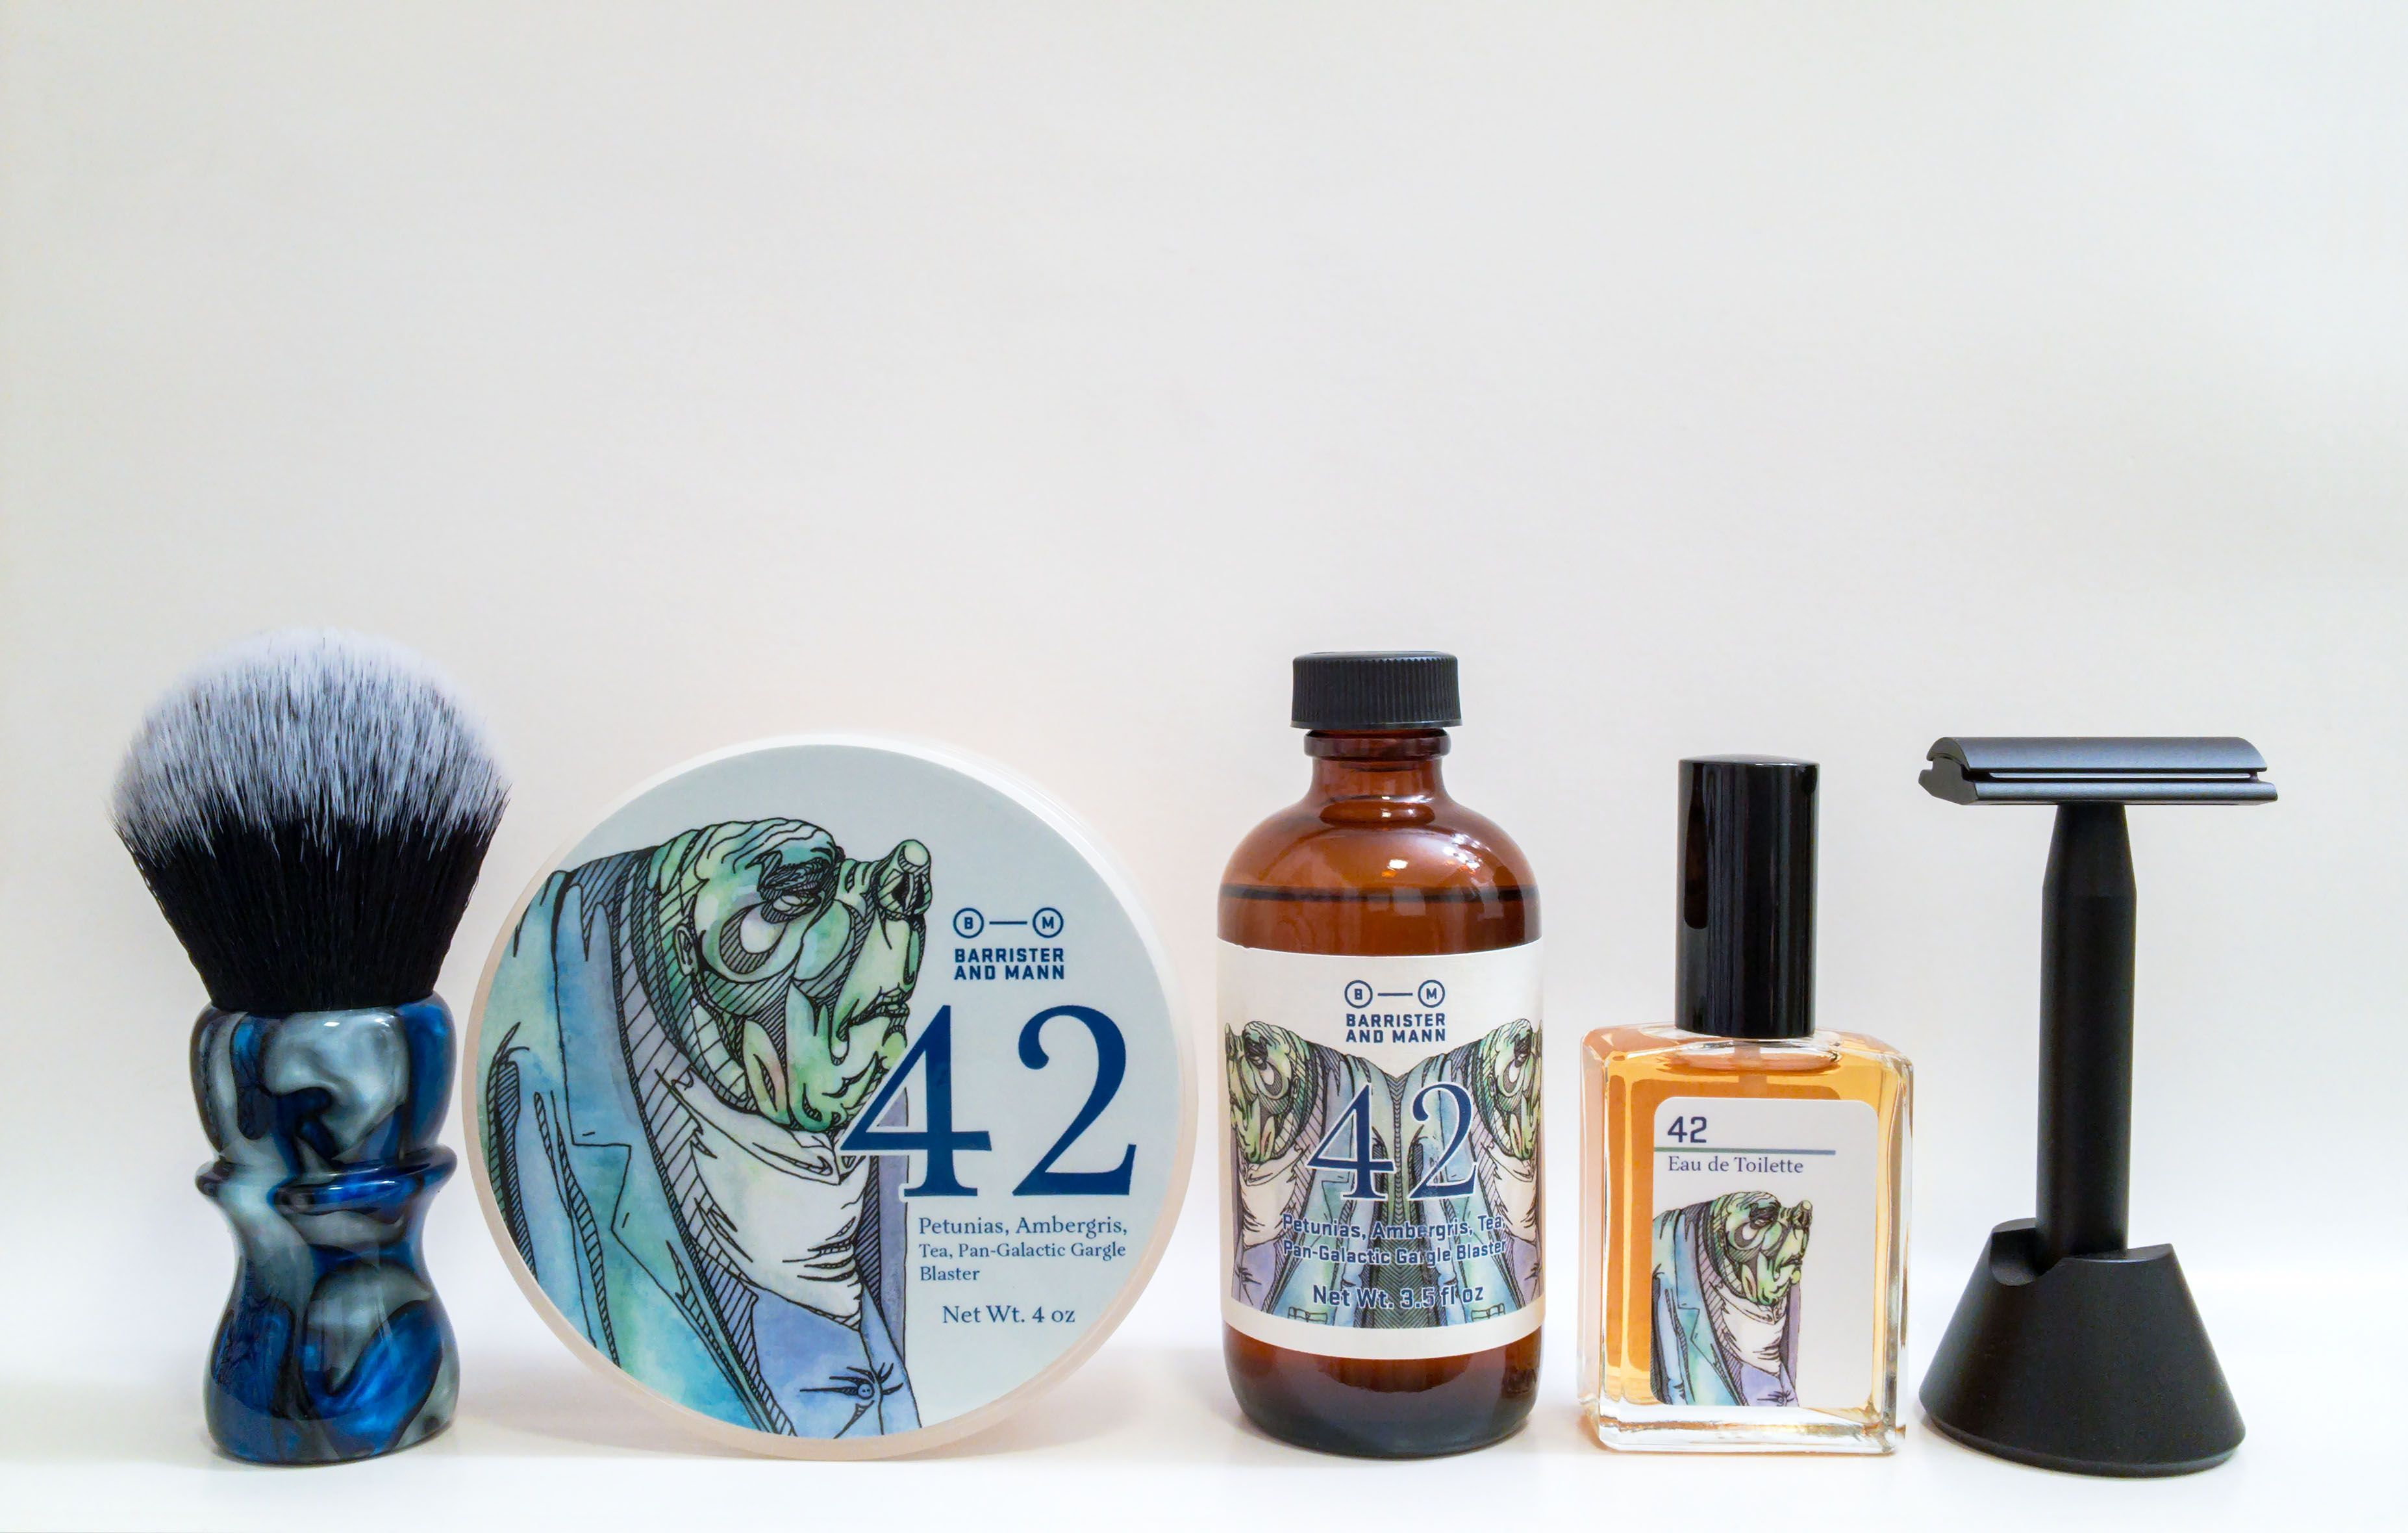 Barrister and Mann - 42